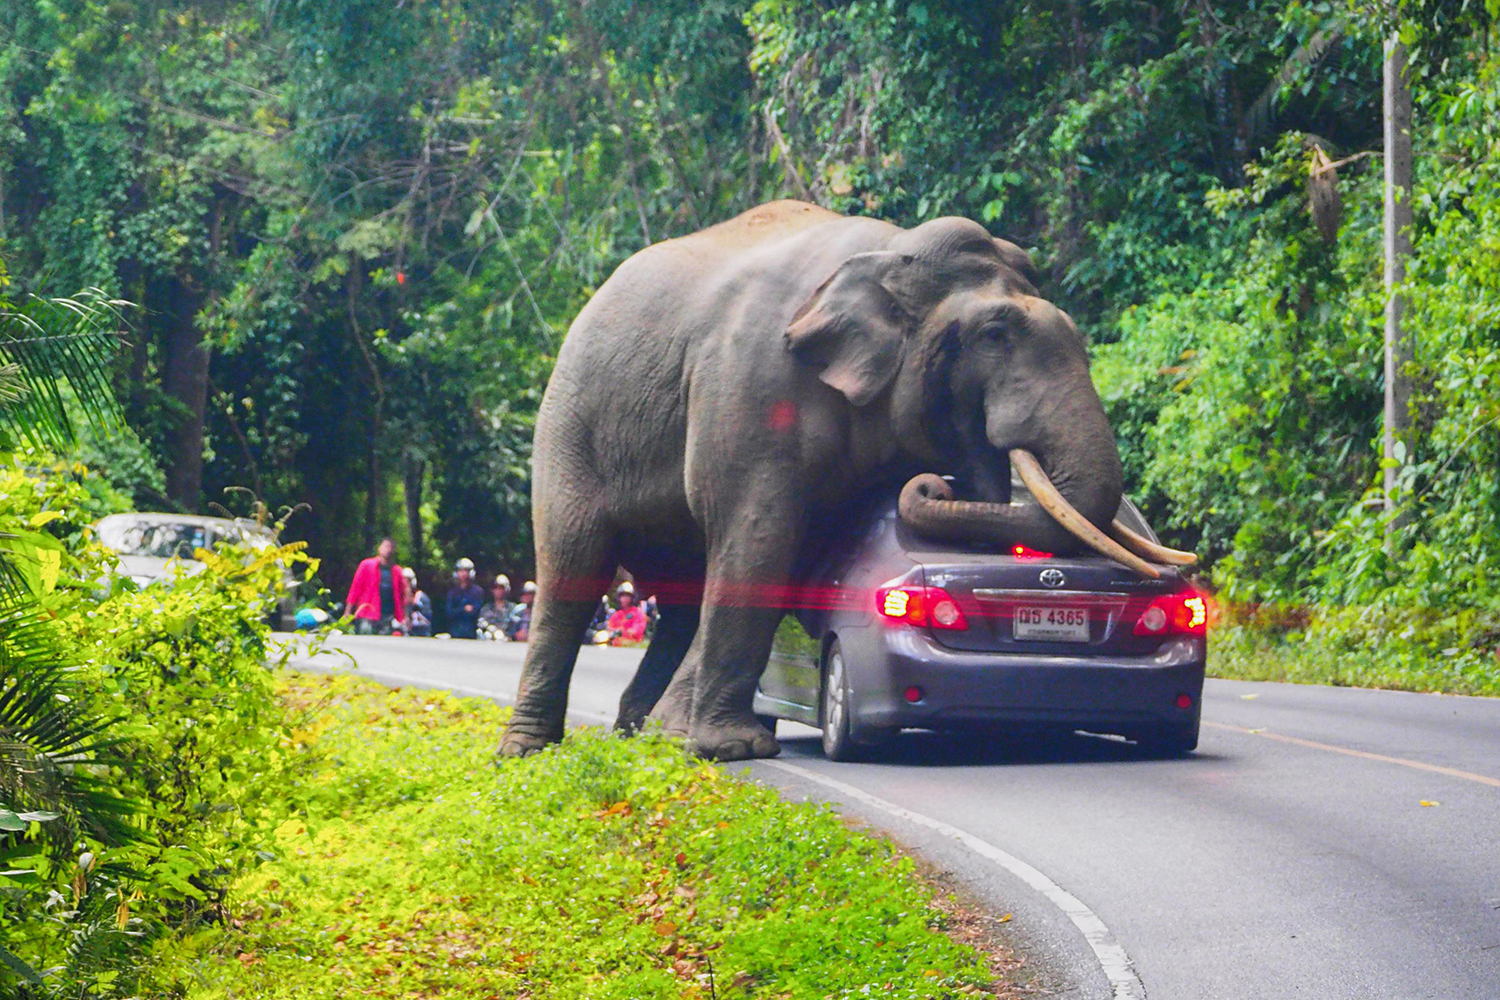 A wild elephant stops a car on a road at Khao Yai National Park in Thailand's Nakhon Ratchasima province on Oct. 29. The driver escaped unhurt with his car slightly damaged. PRATYA CHUTIPASKUL/AFP via Getty Images